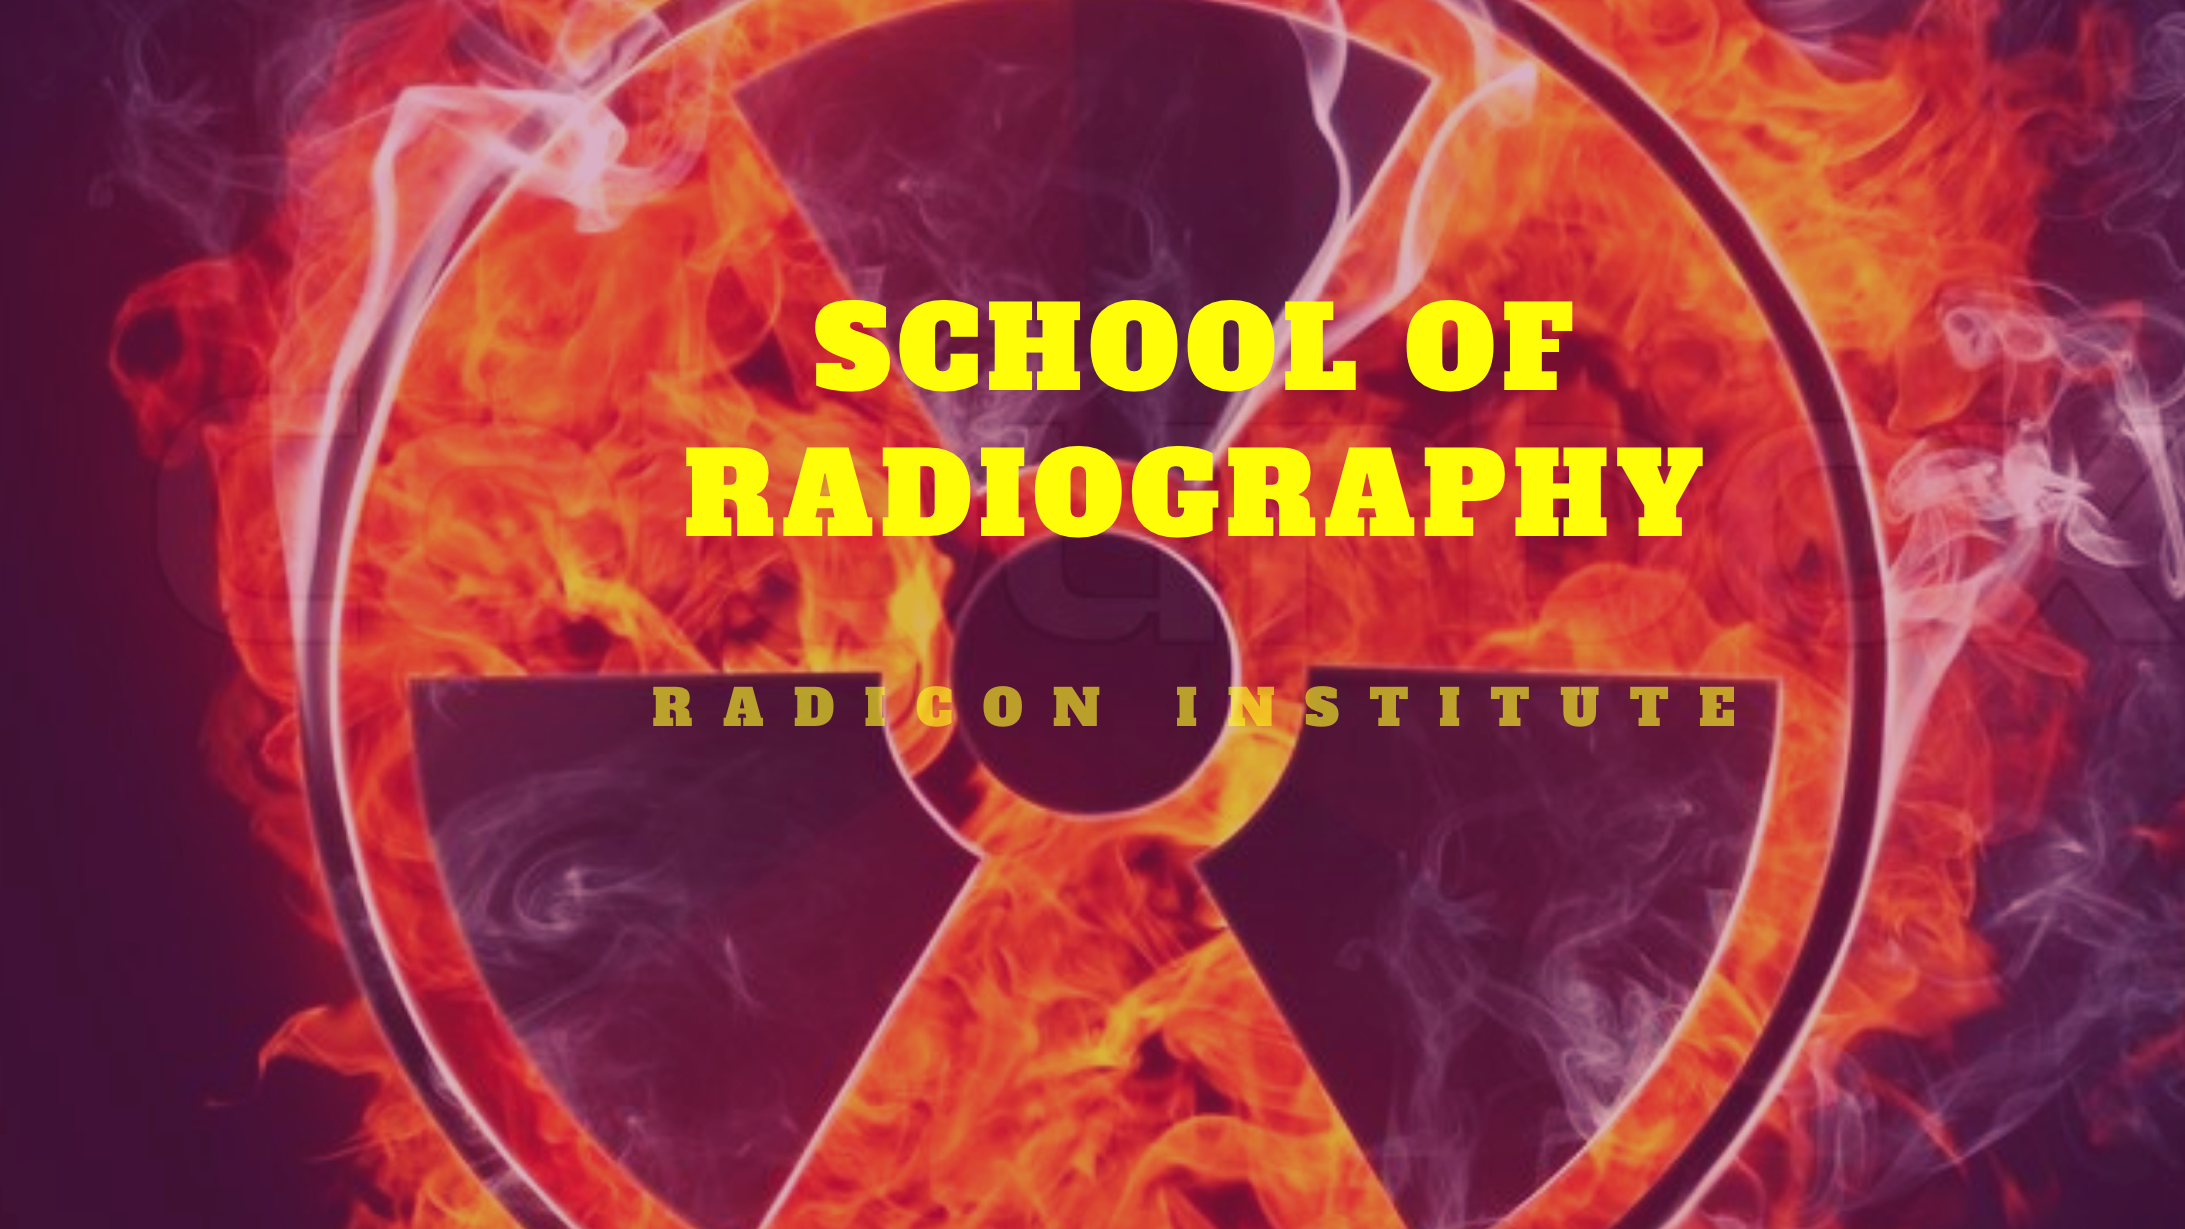 School of Radiography